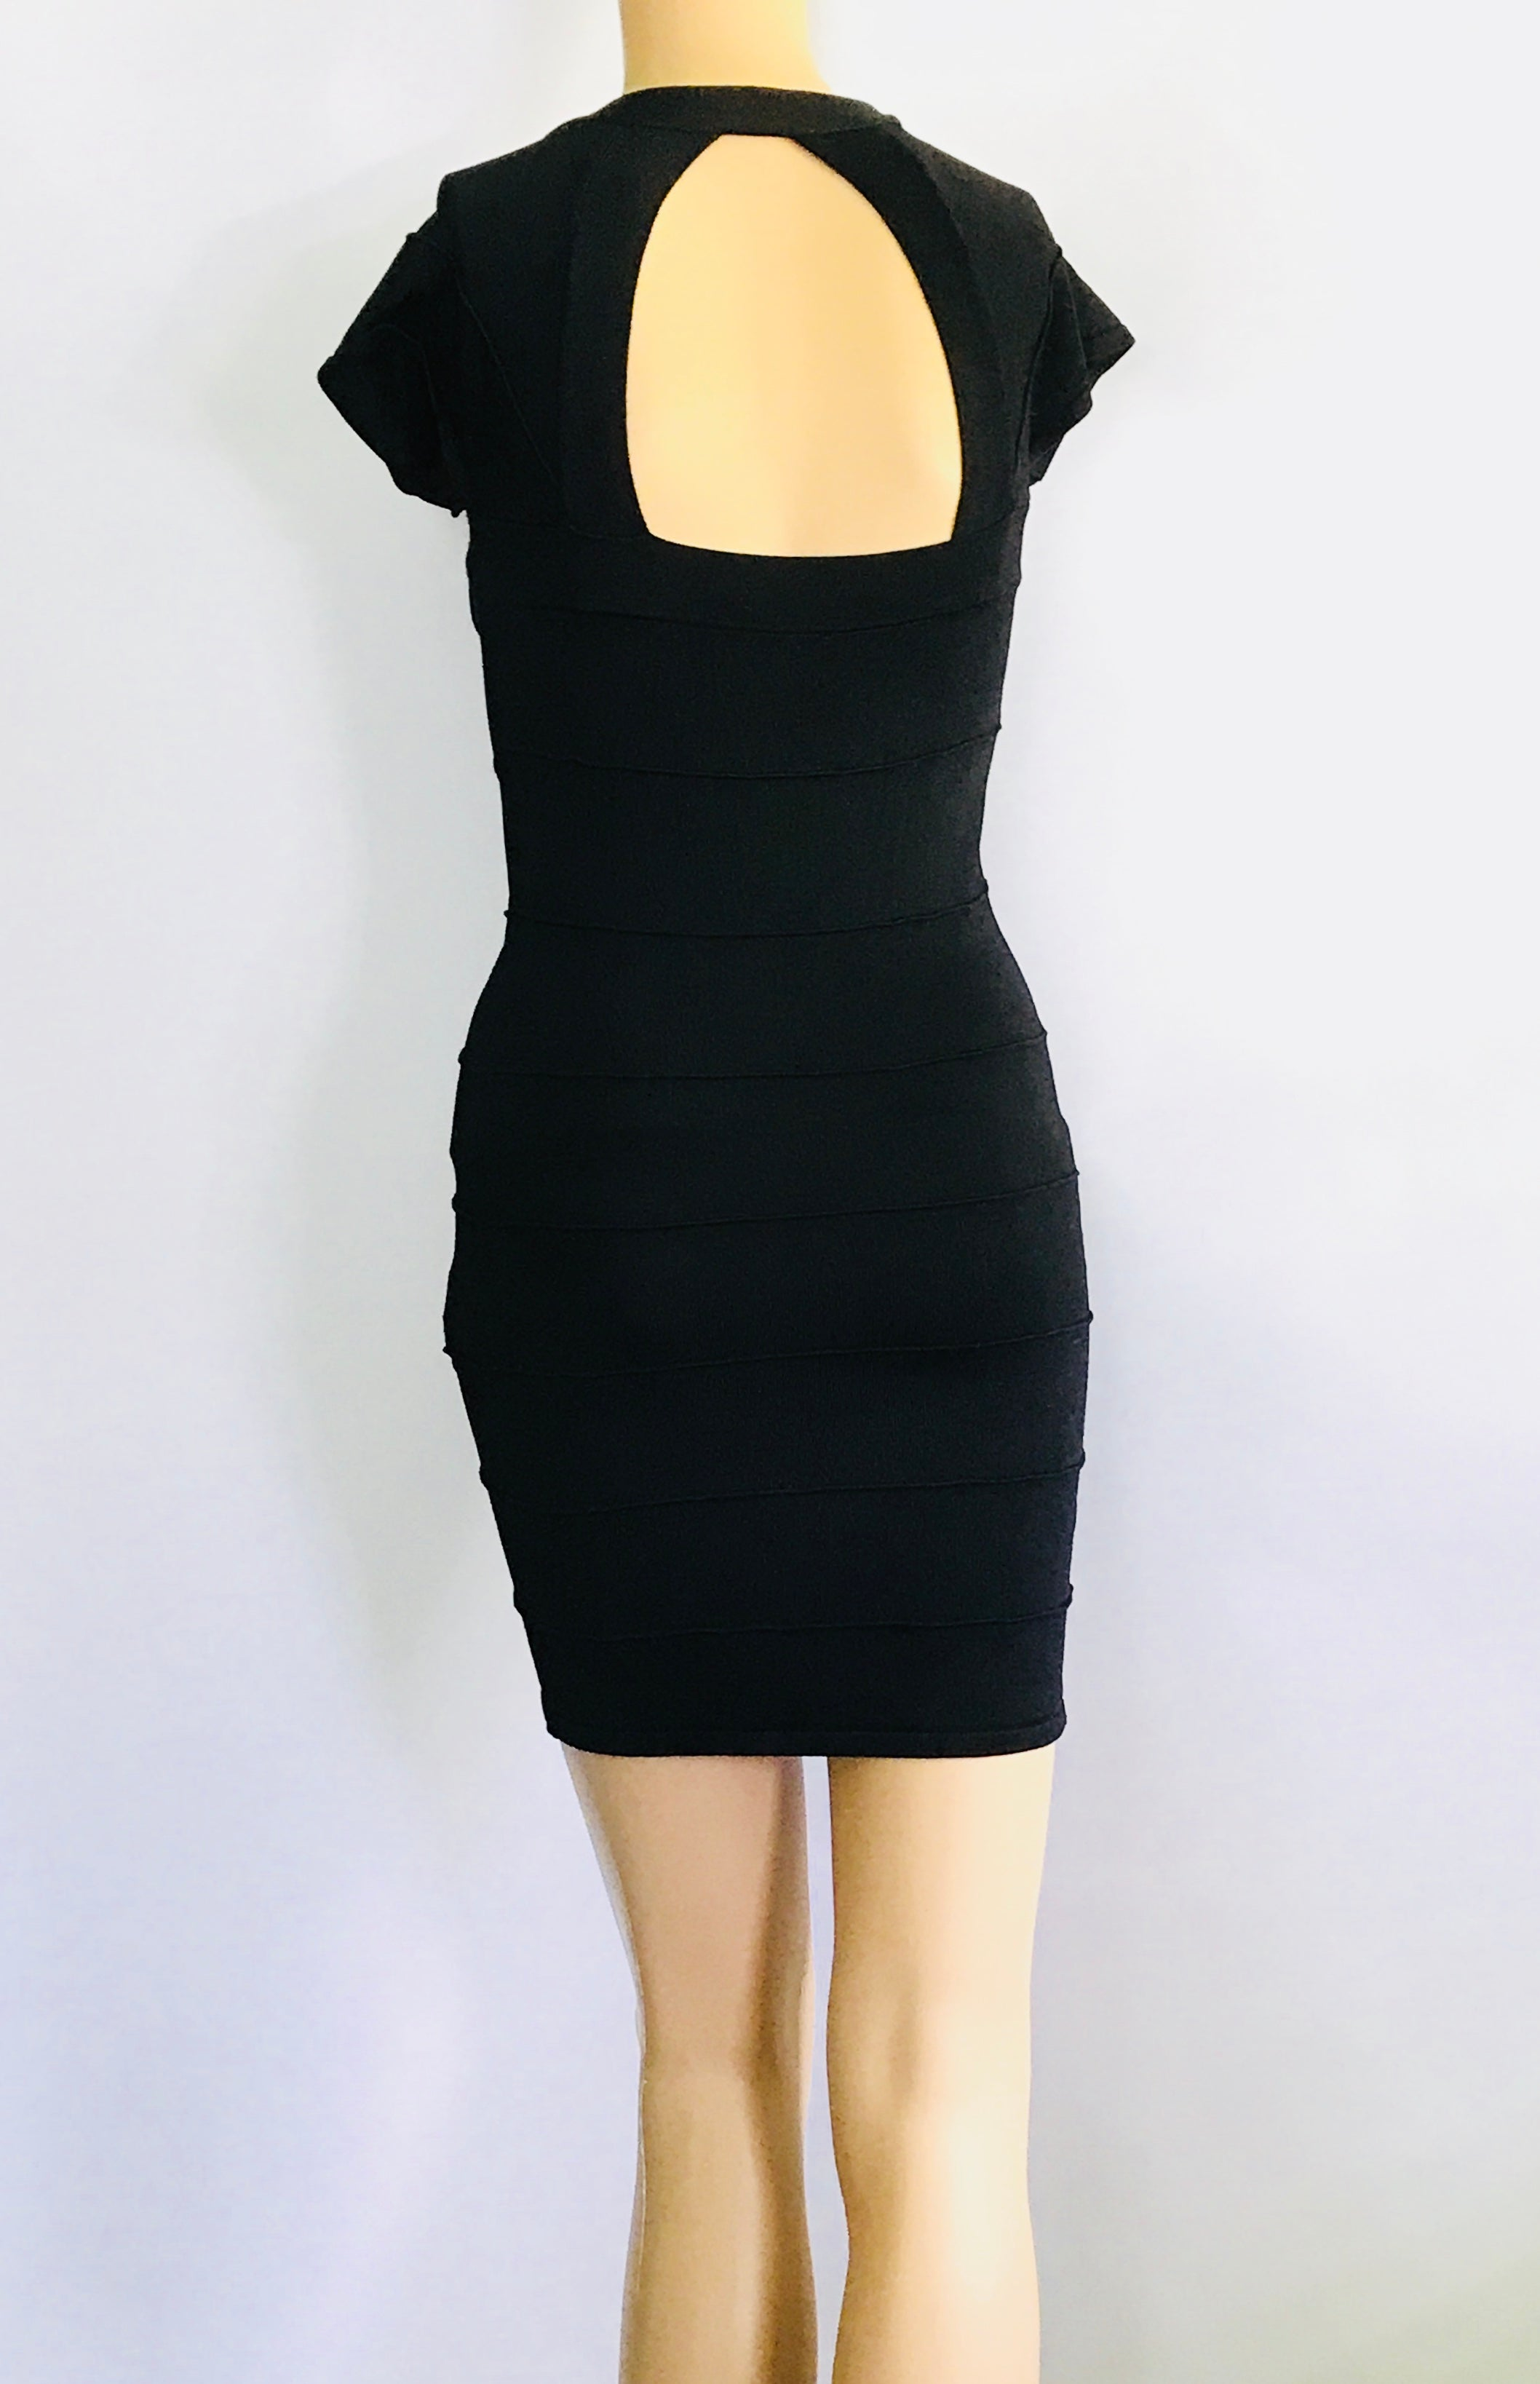 Black Mini Dress by XXI (S)